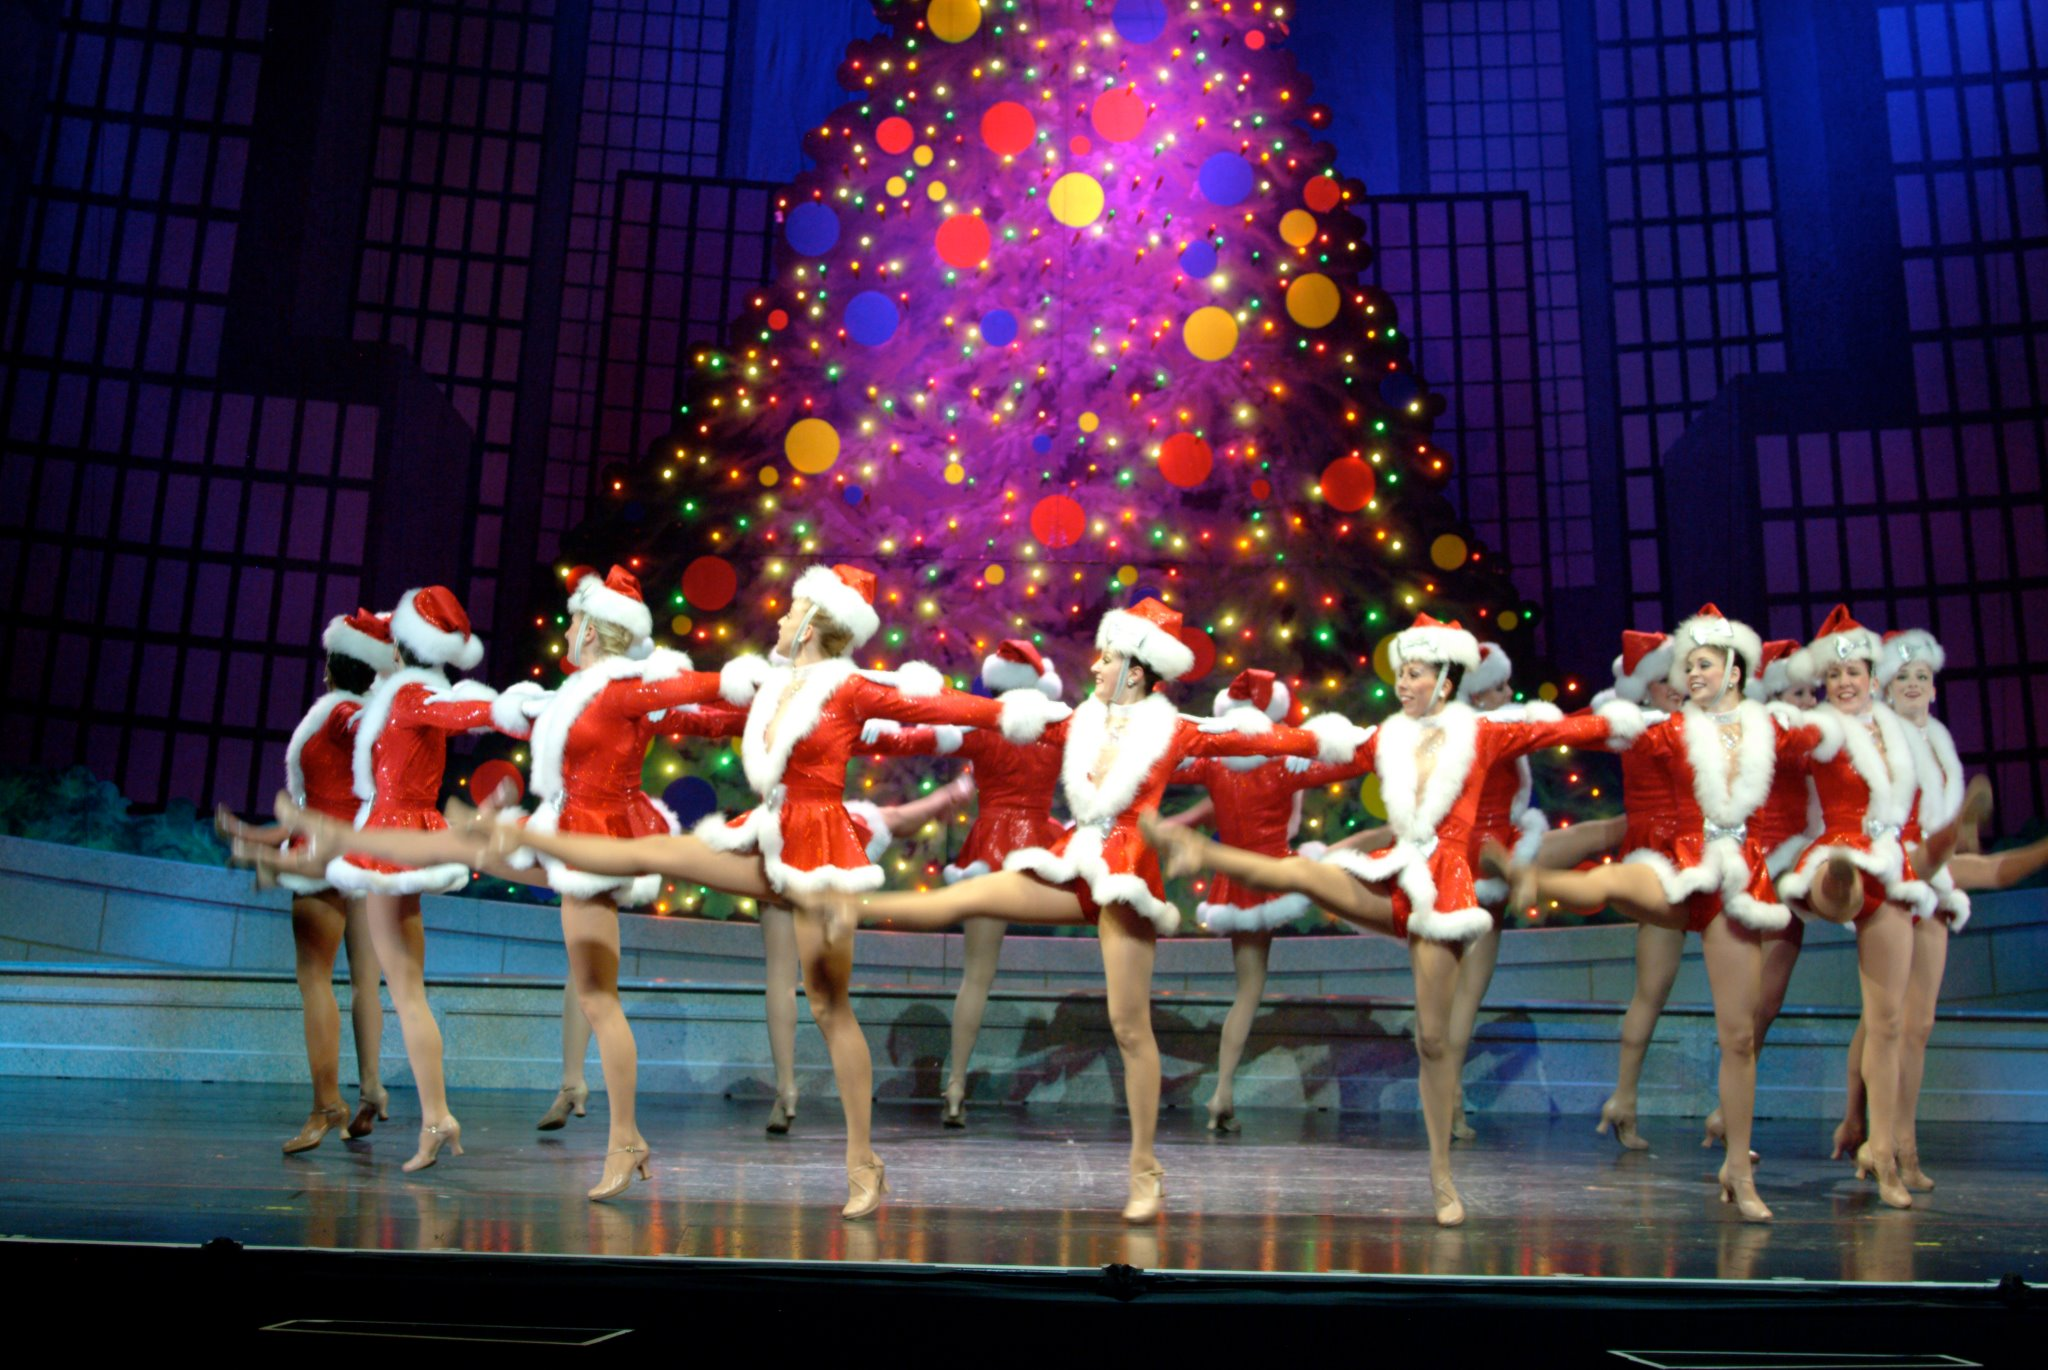 Rockettes Christmas Show.The Rockettes Radio City Christmas Spectacular Nj Family